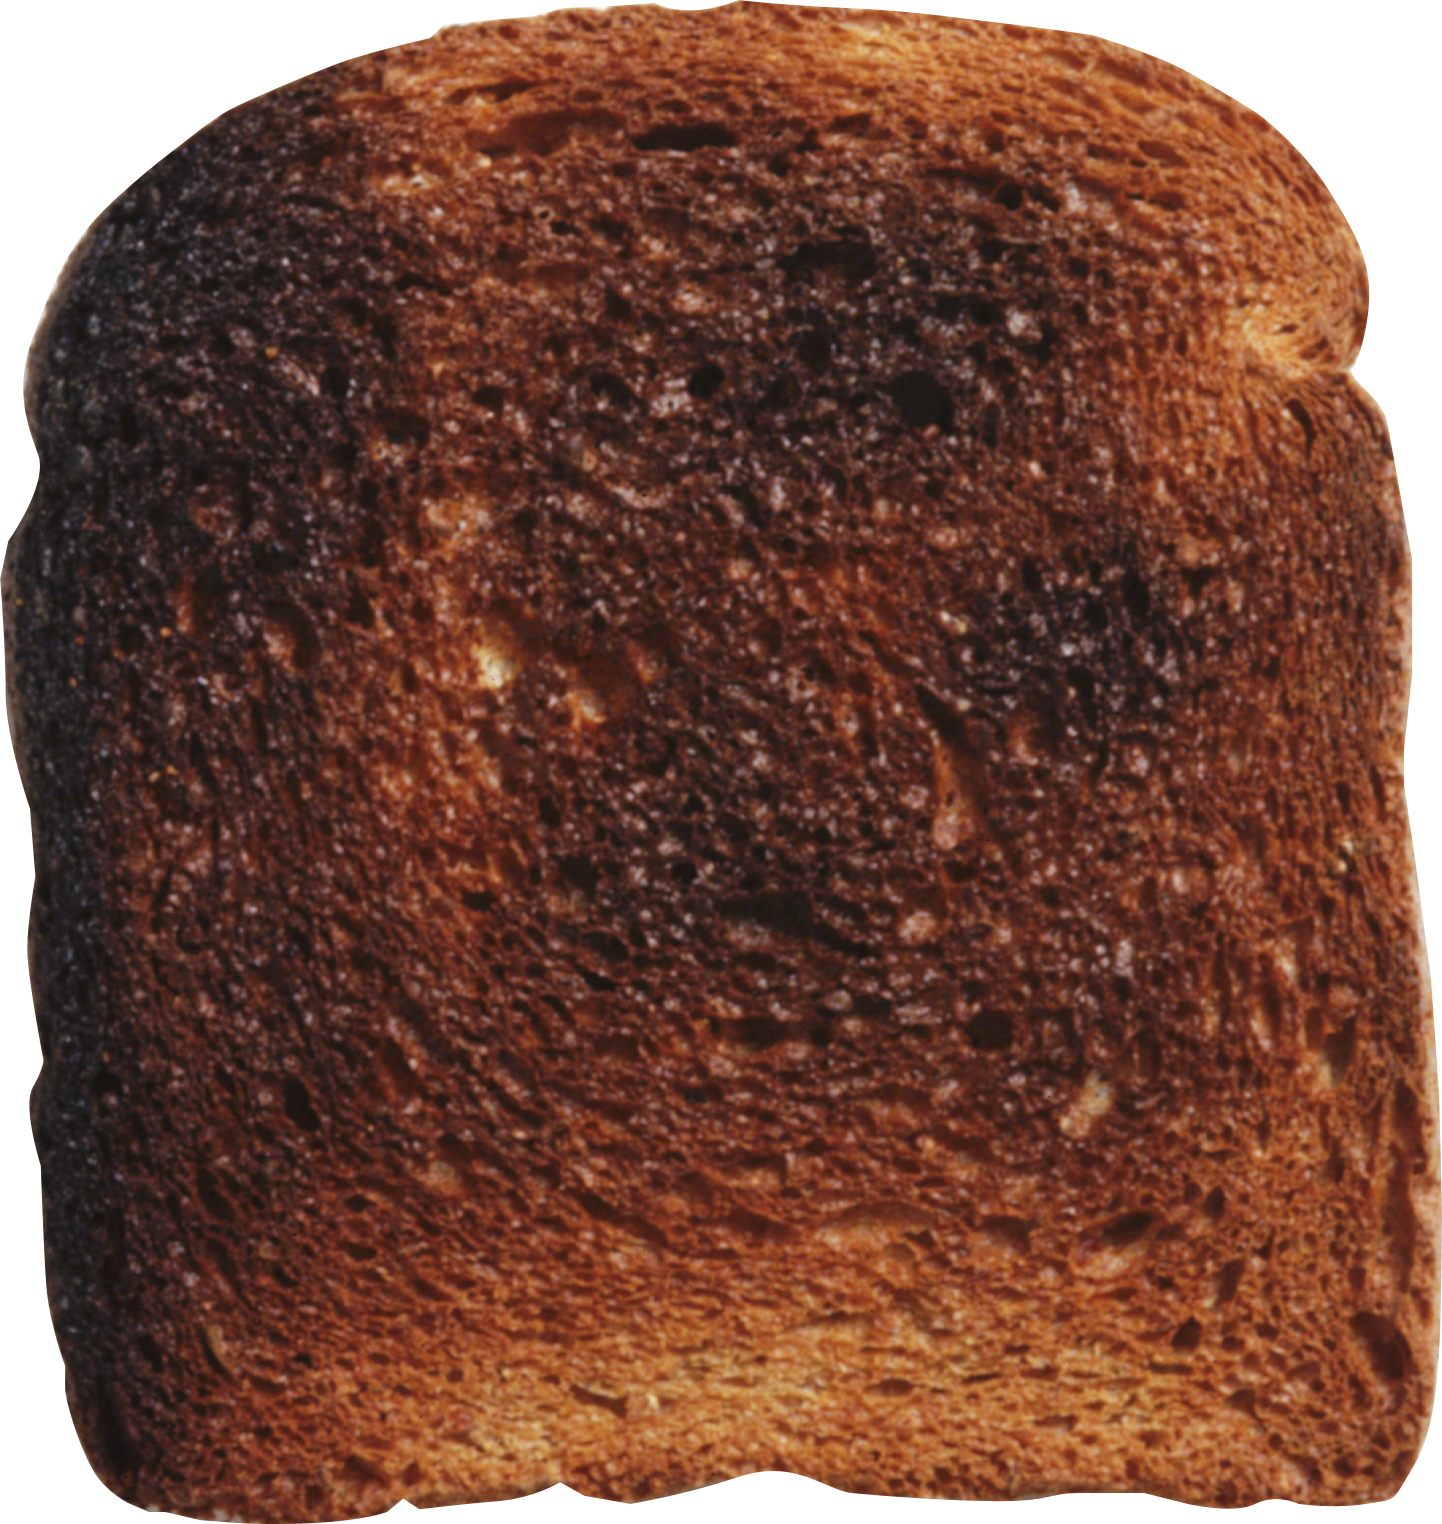 Overdone Toast PNG Image